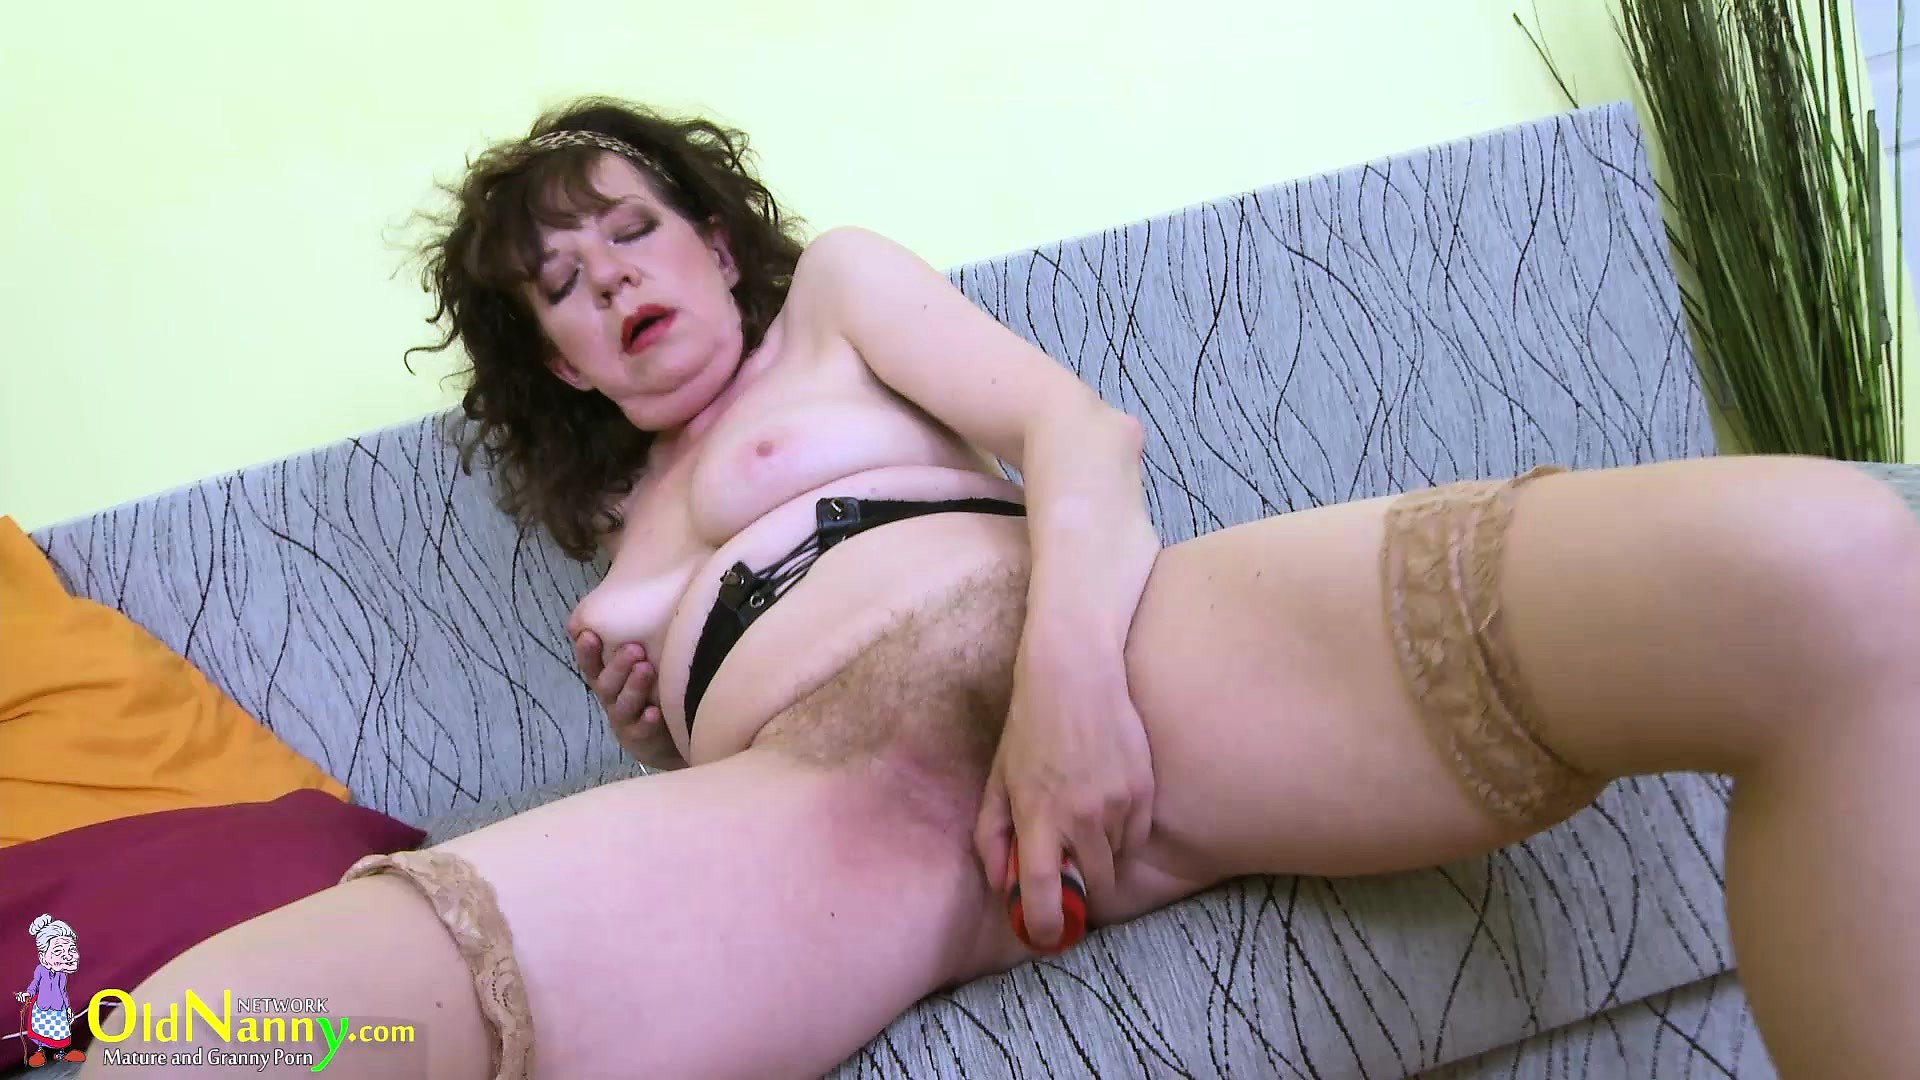 Mature Hairy Pussy Interracial